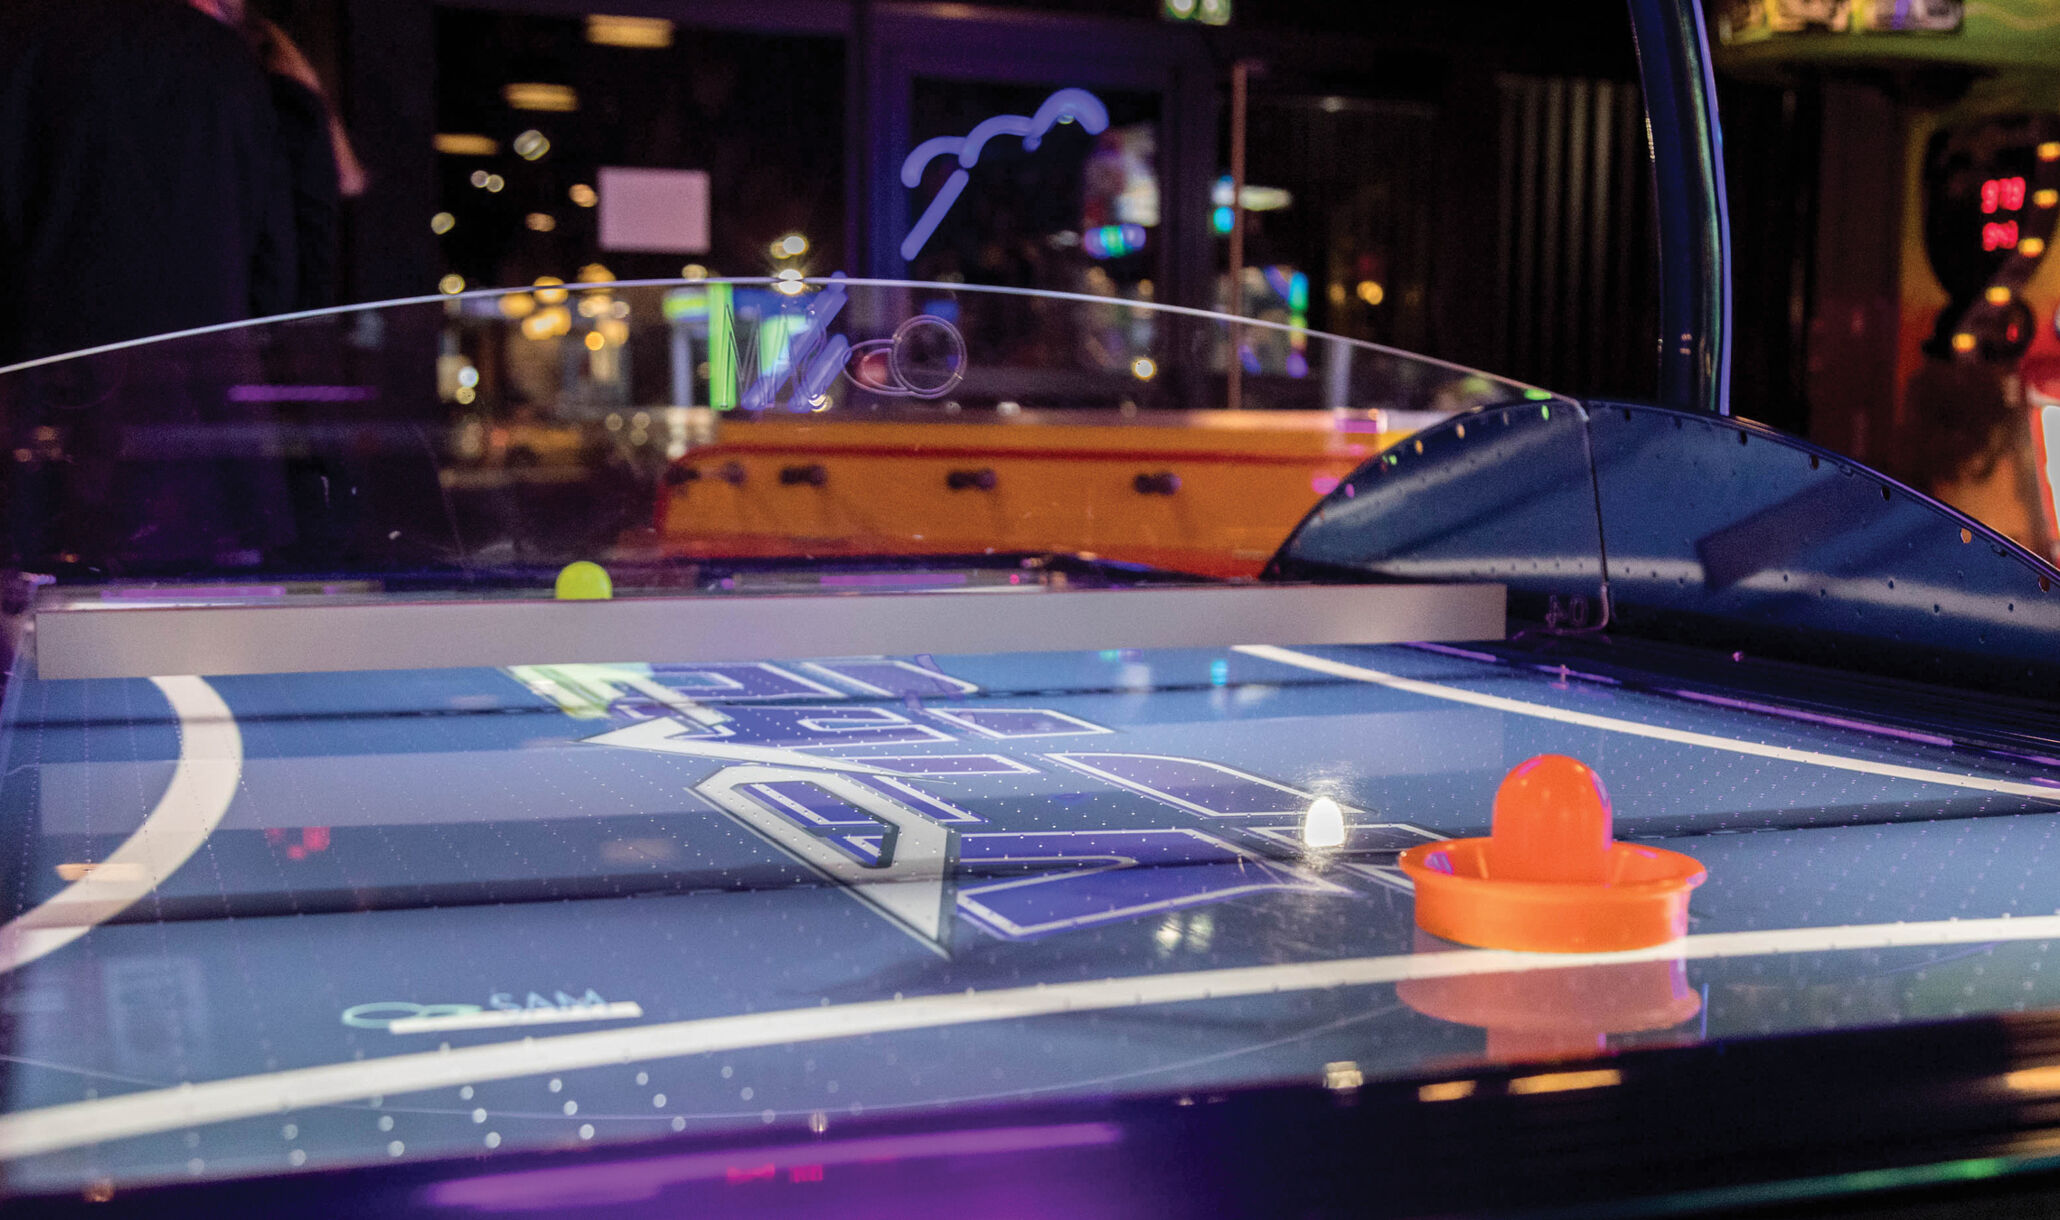 1055 Bourg, Bourg En Bresse, France - Air hockey-1